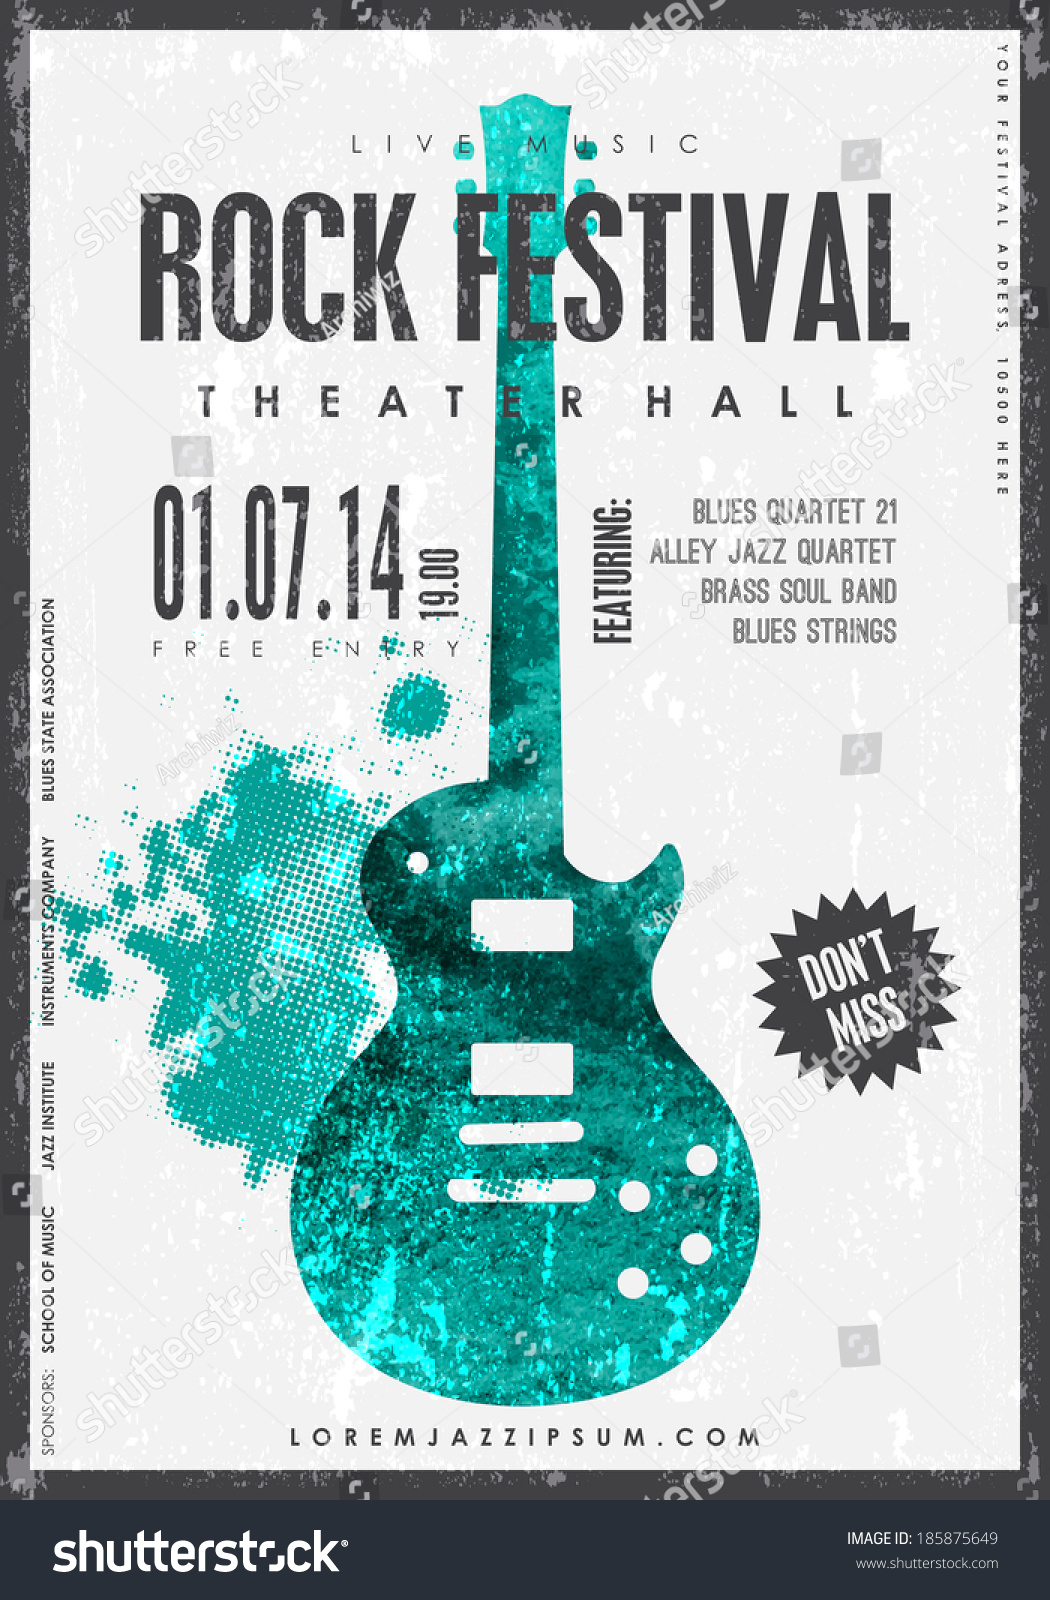 concert press release template - rock music poster background template texture stock vector